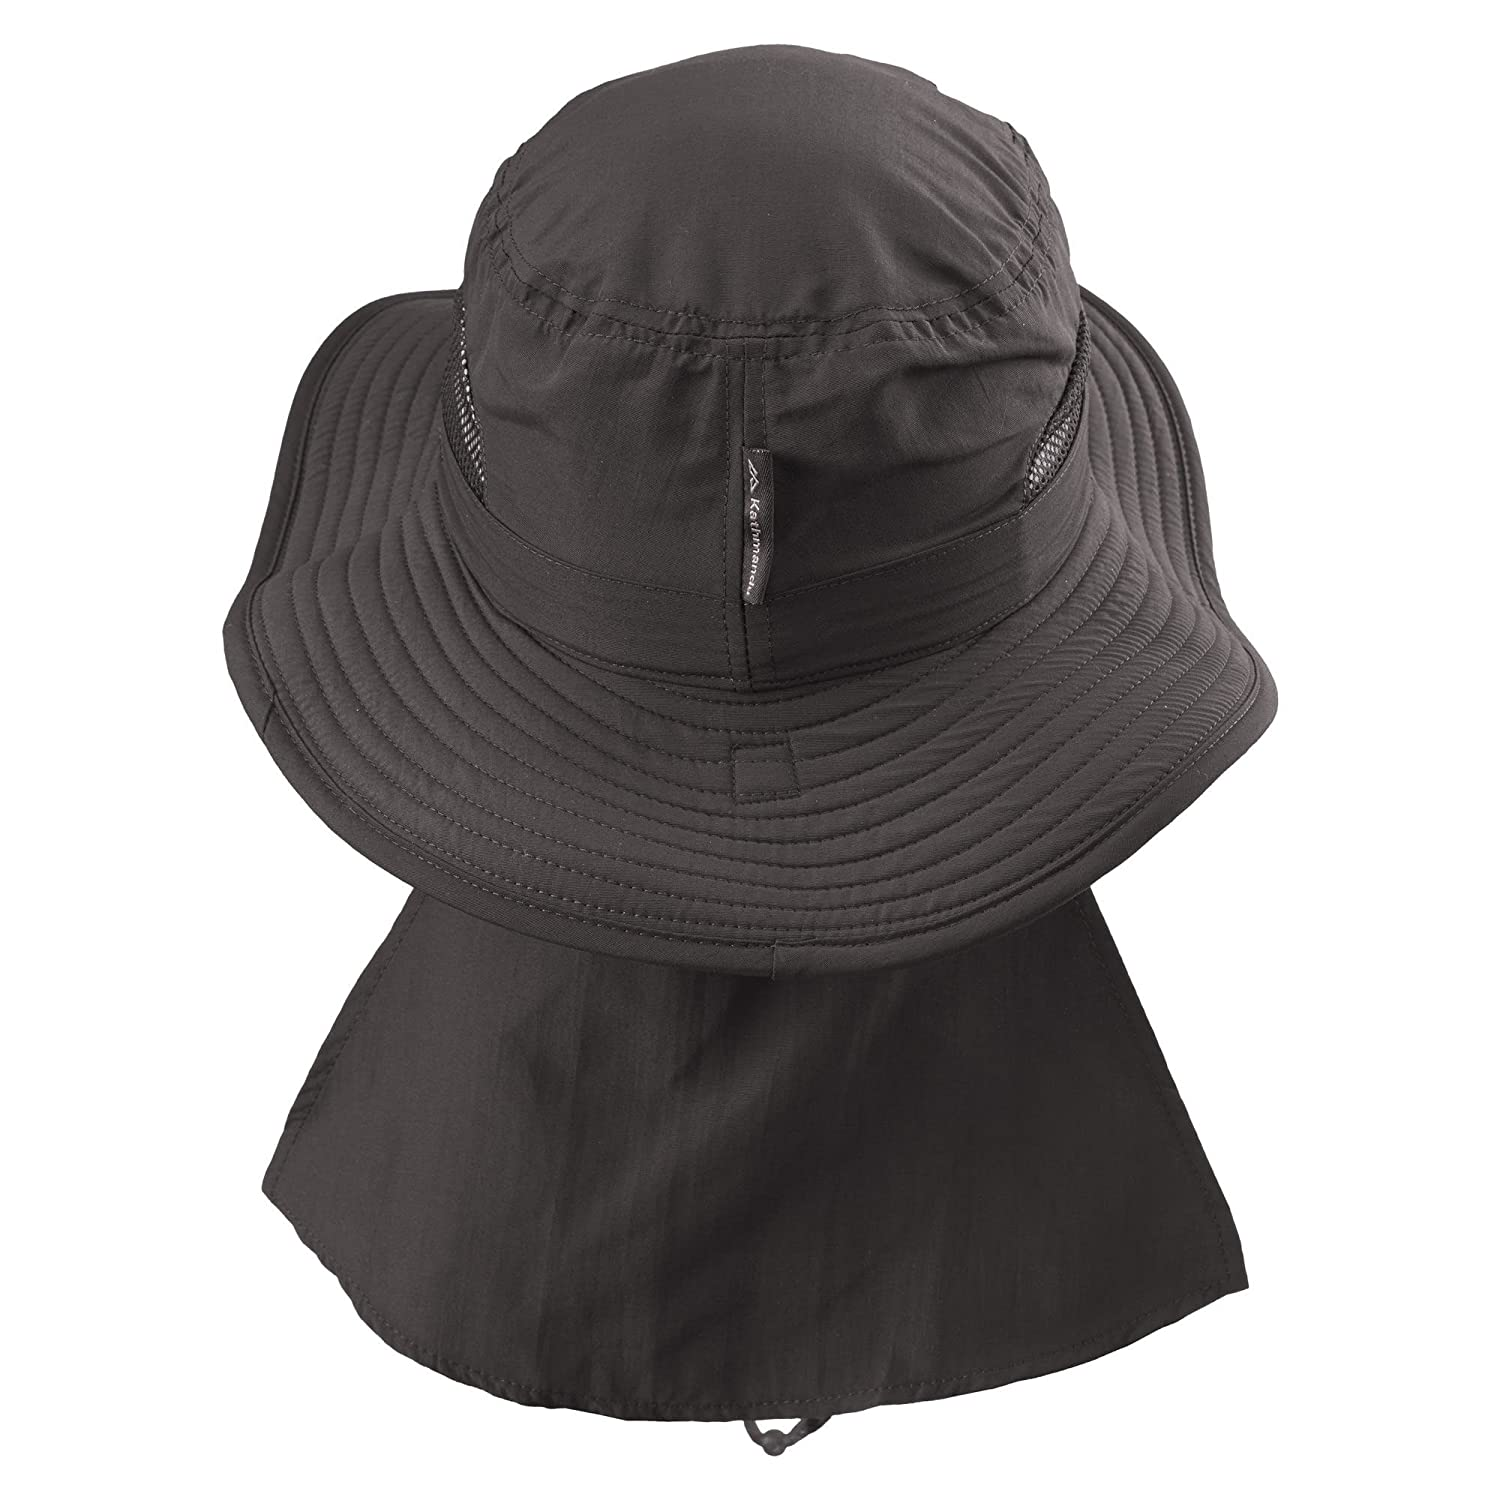 940323d1b8b Kathmandu buzzGUARD Unisex Wide Brim Hat - L XL  Amazon.co.uk  Sports    Outdoors